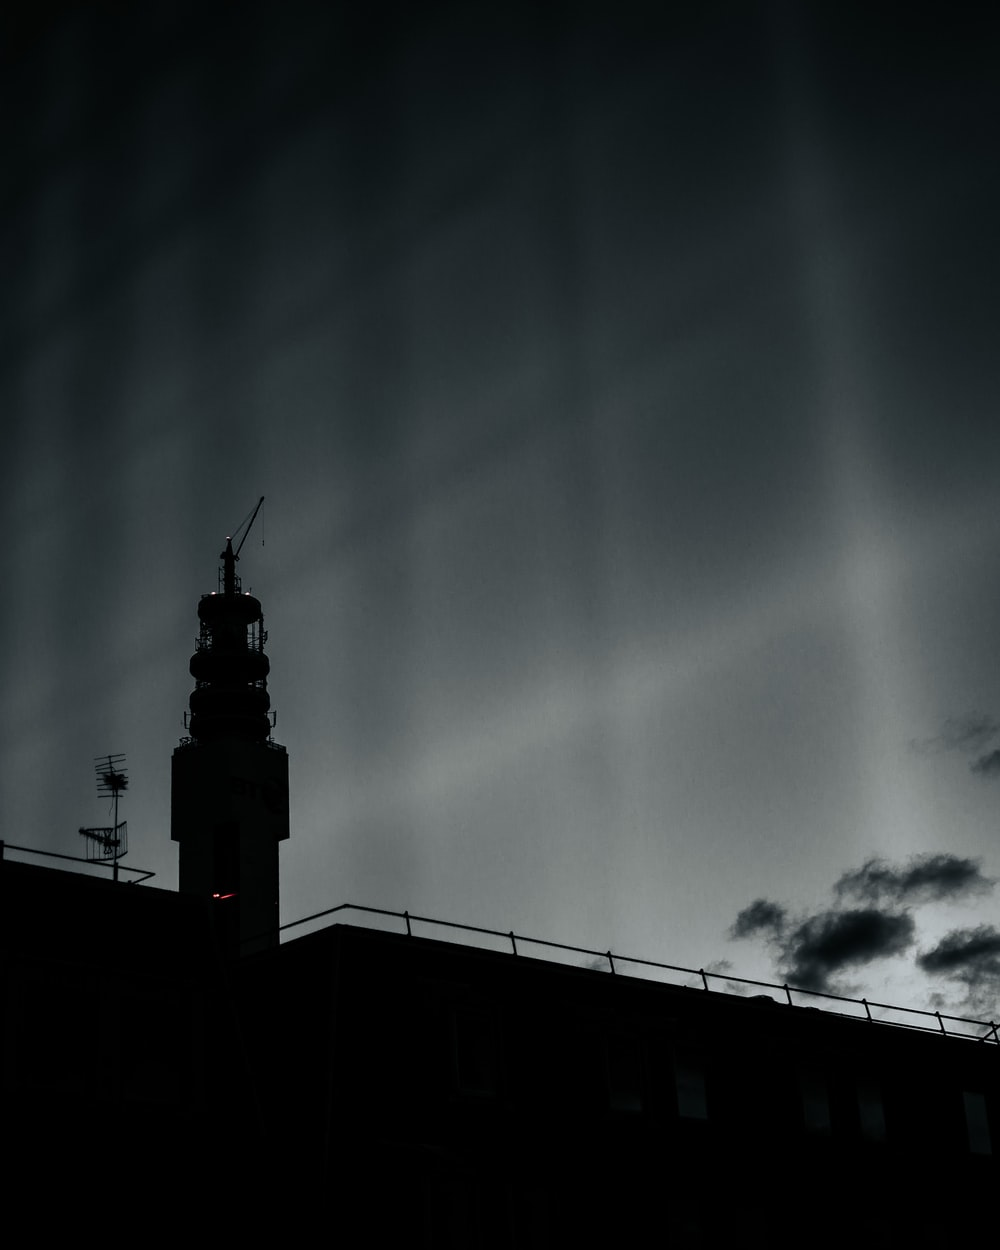 silhouette of tower under cloudy sky